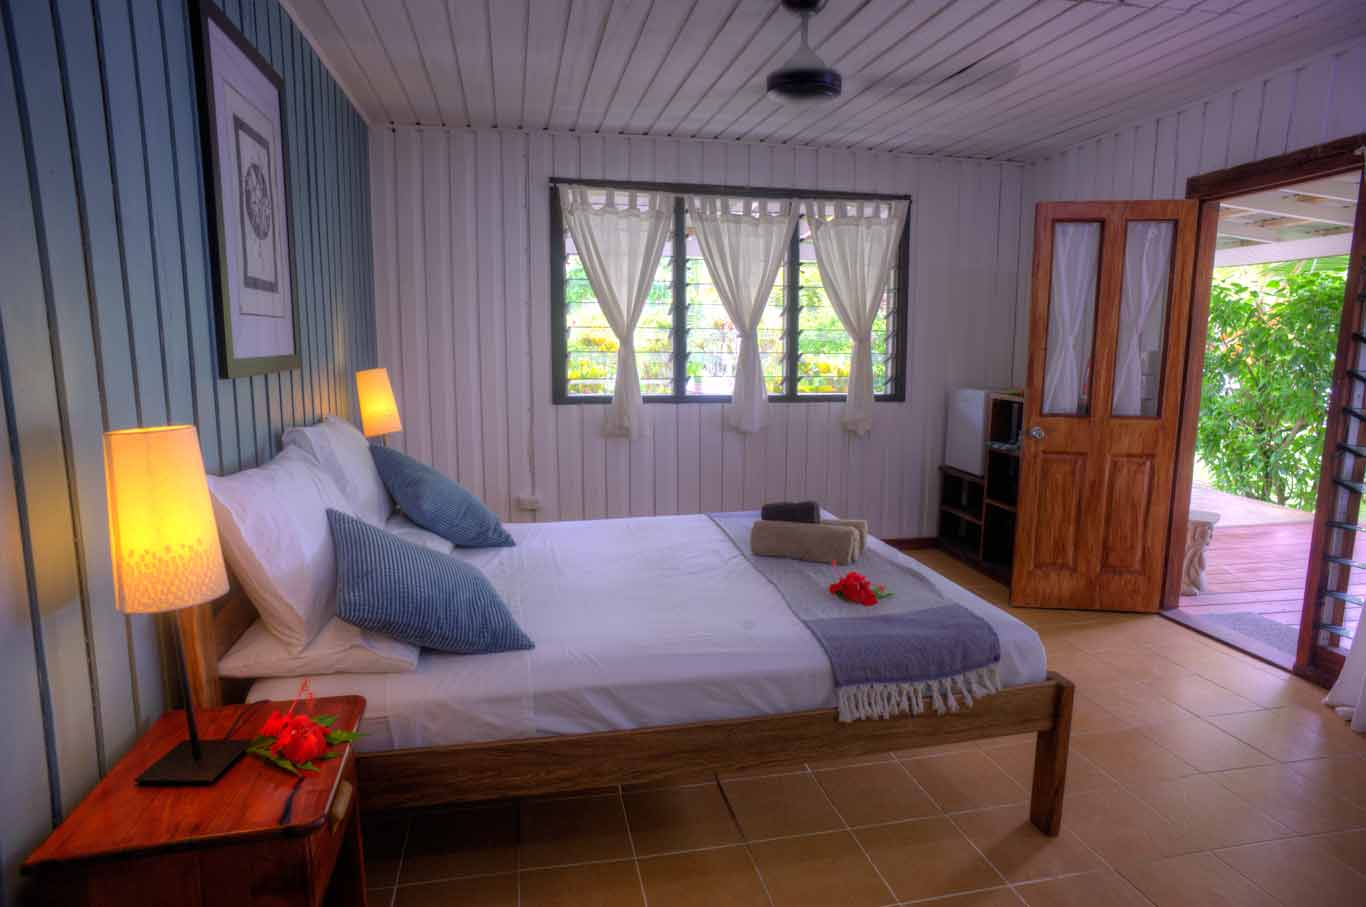 Sea view budget double room at Turtle Bay Lodge